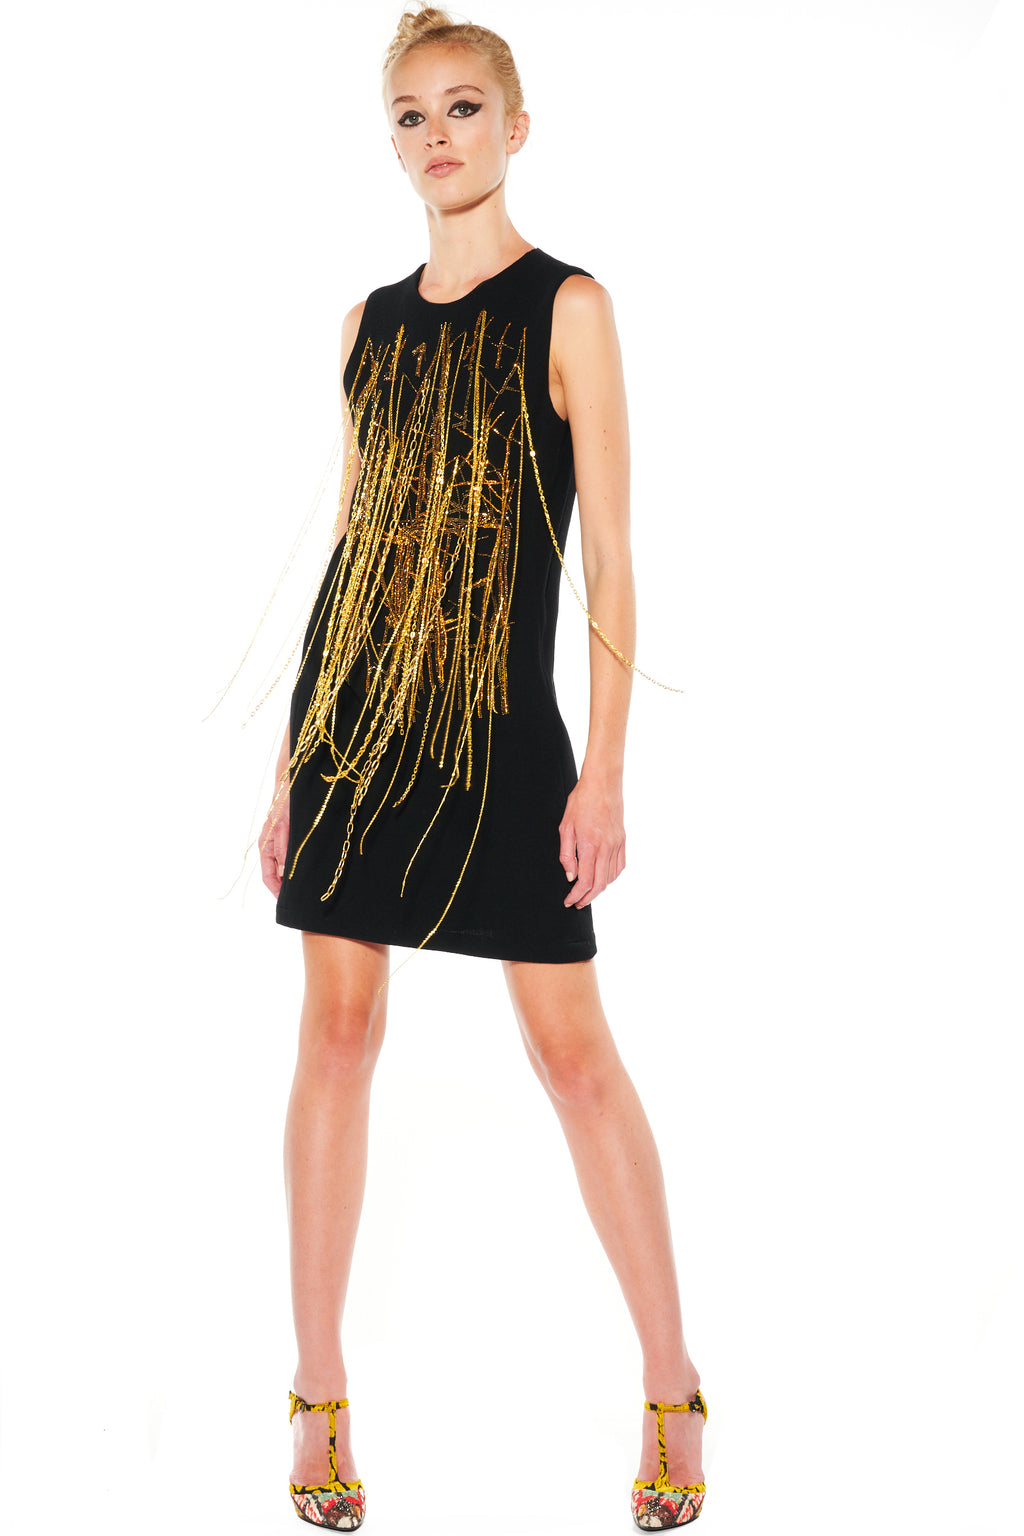 """CHAINS FOR THE BETTER"" SHIFT DRESS - Women's Dresses - Libertine"